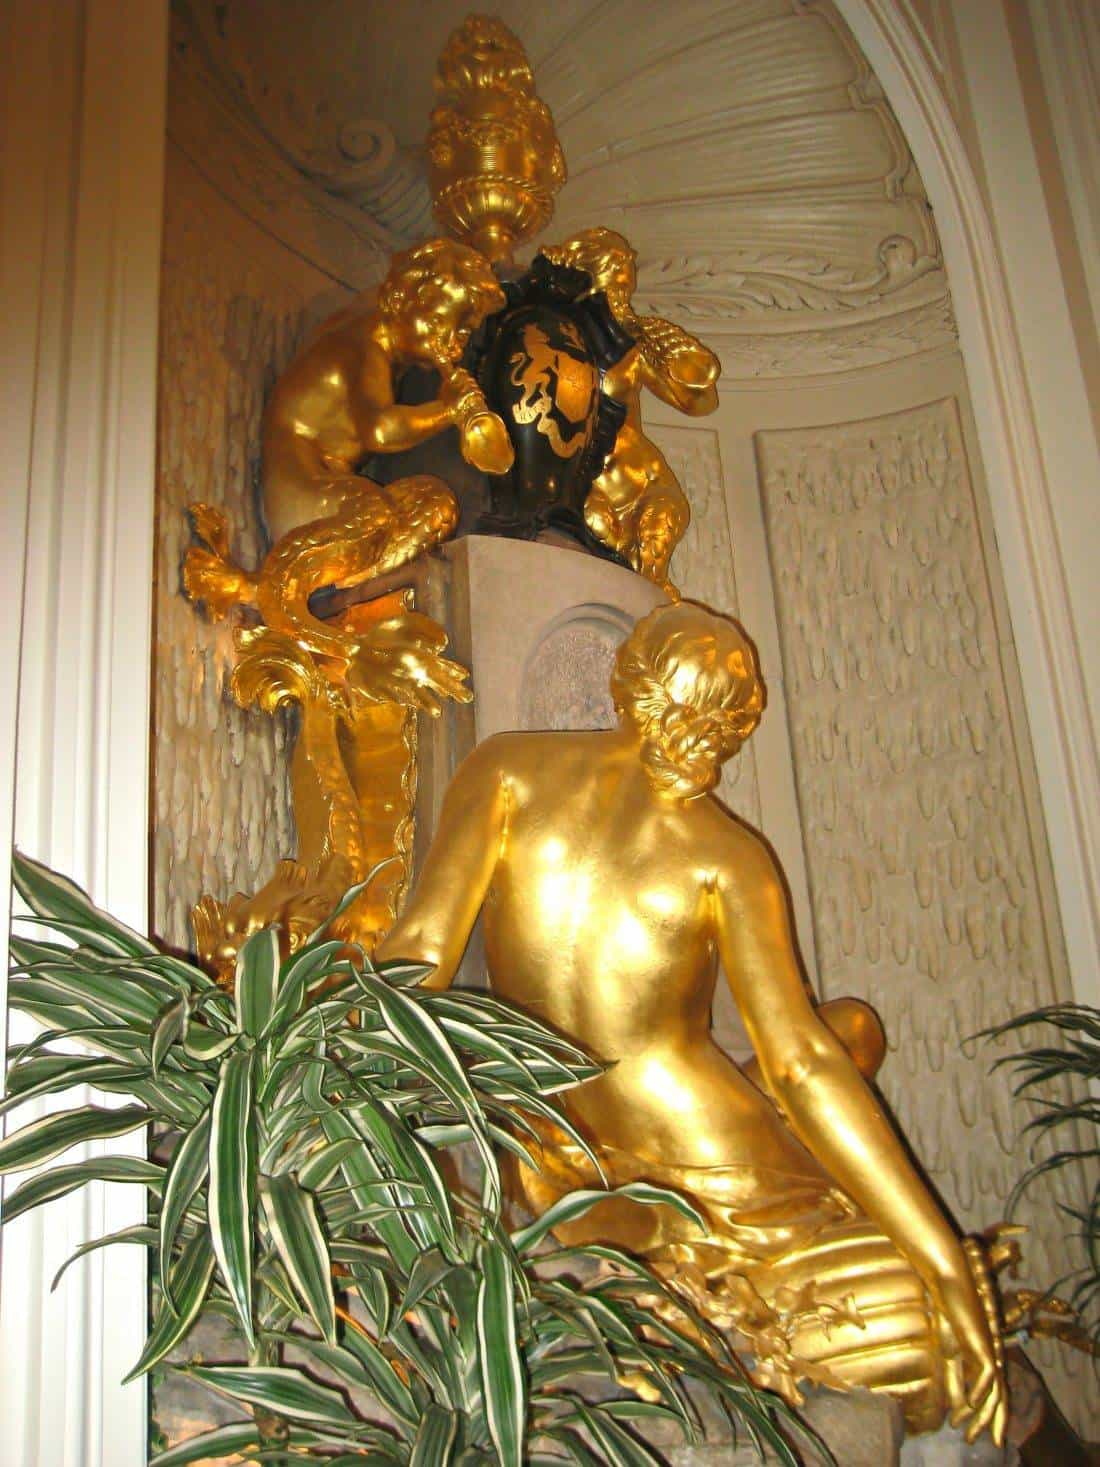 Gold statues